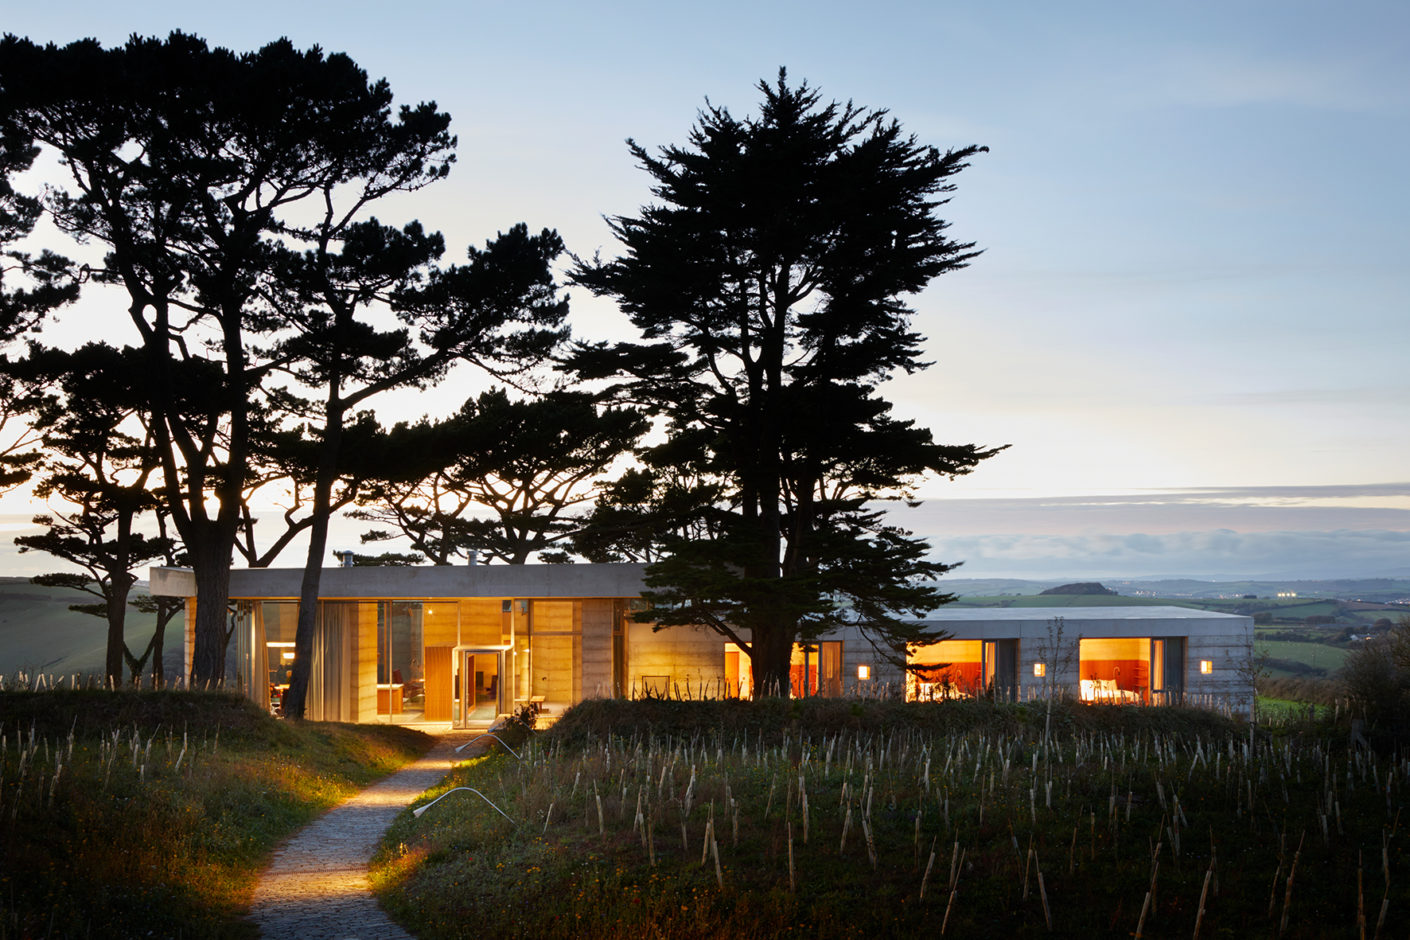 The villa is the latest project of the holiday home developer Living Architecture, who has already realised houses with John Pawson or the Dutch office MVRDV.